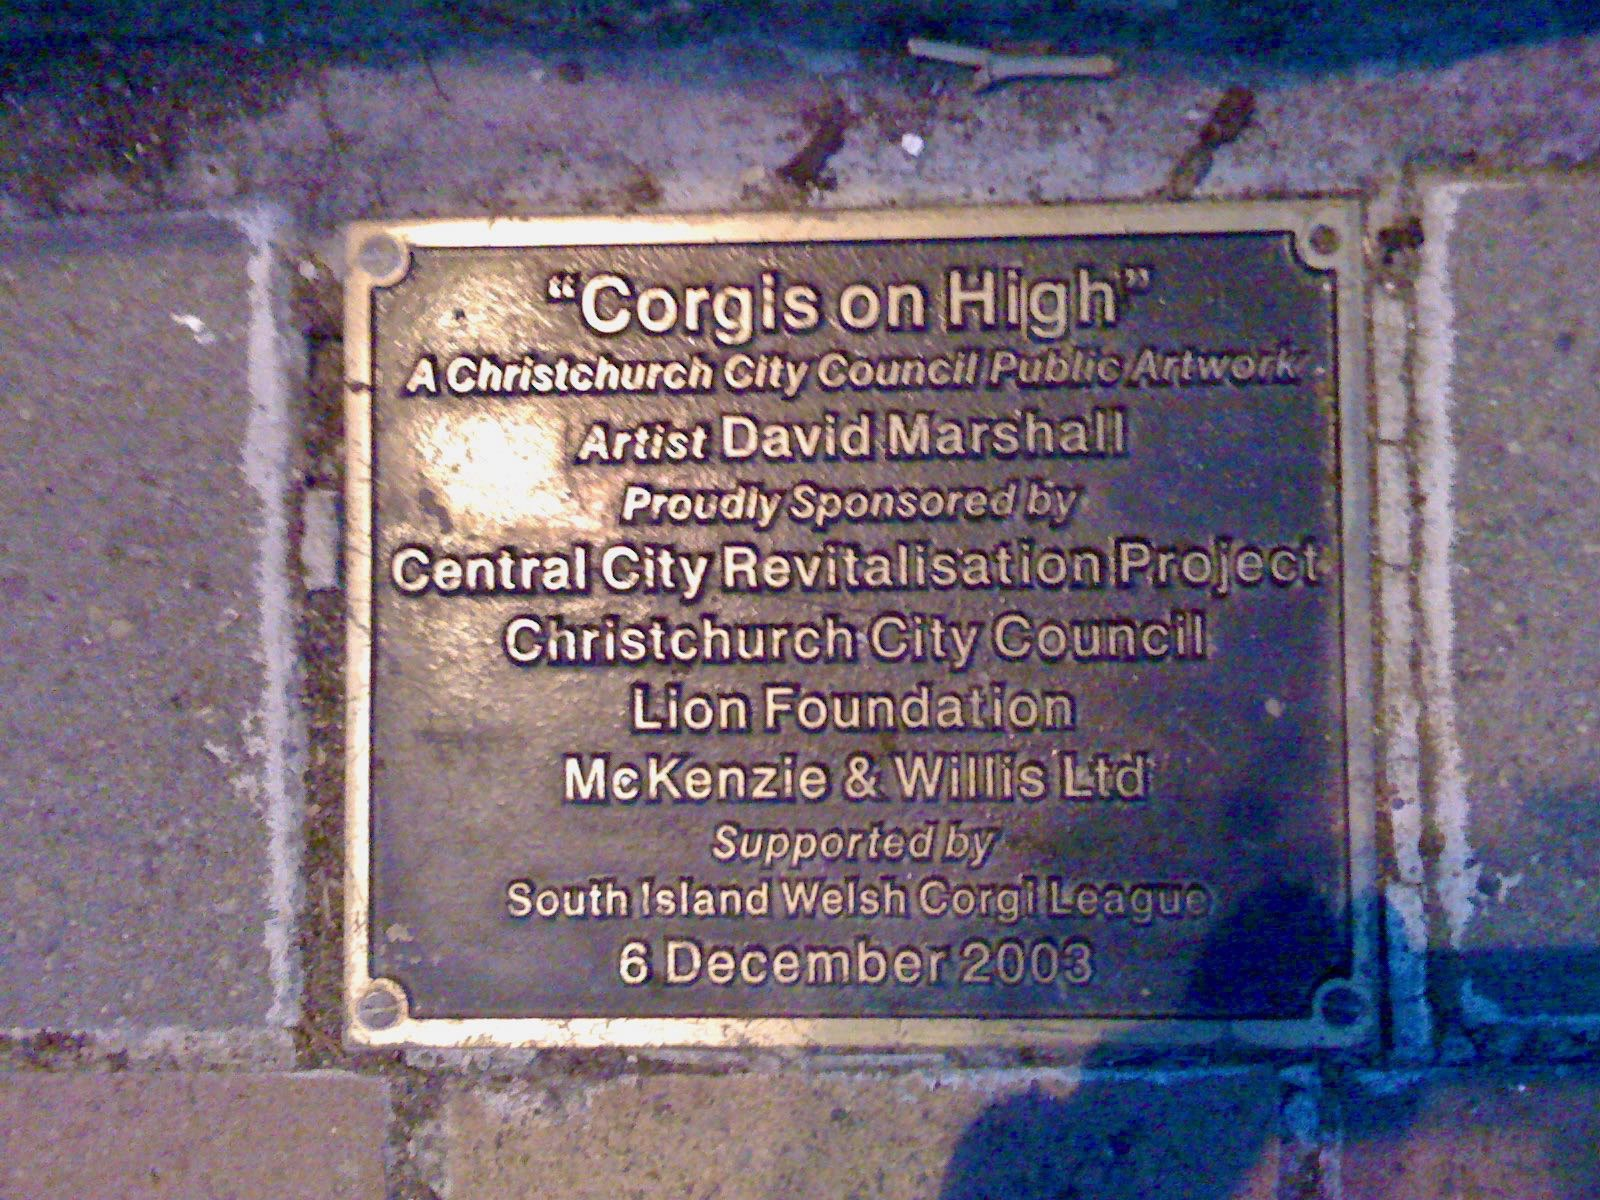 Plaque for Corgis on High.